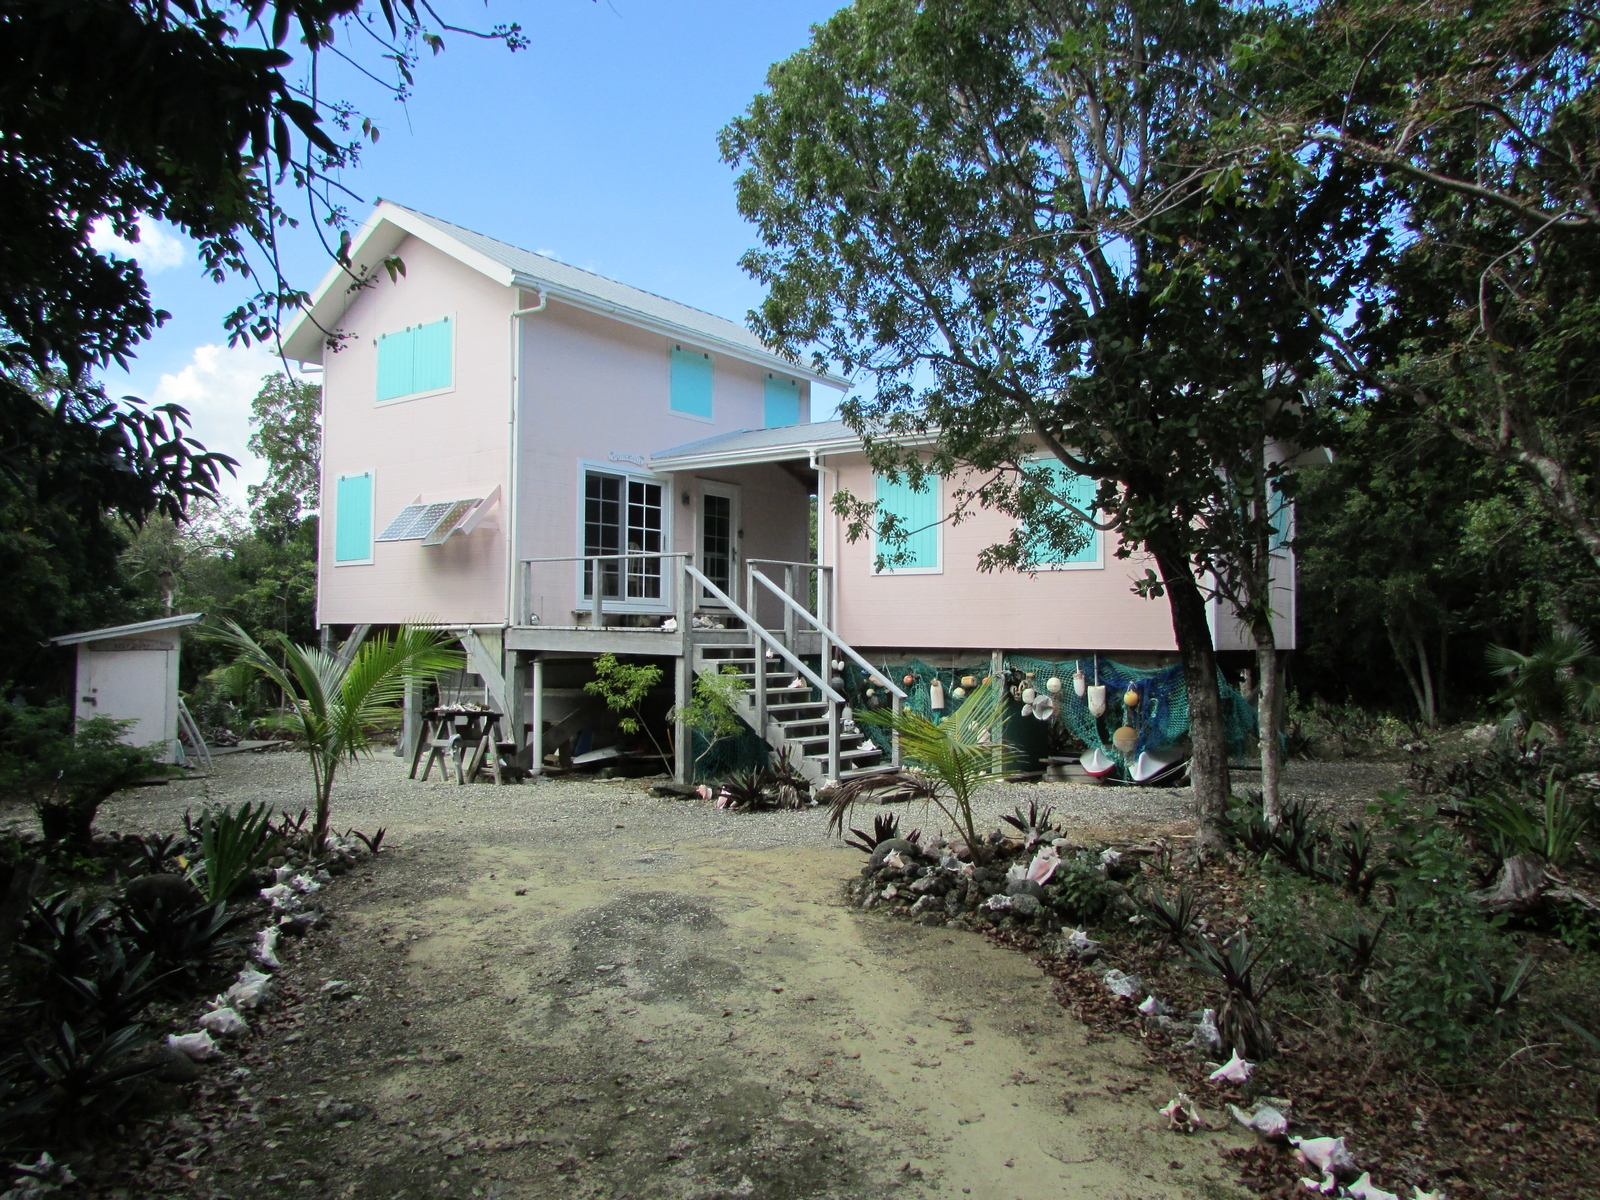 Single Family Home for Sale at Villa Kula Abaco Ocean Club, Lubbers Quarters, Abaco Bahamas